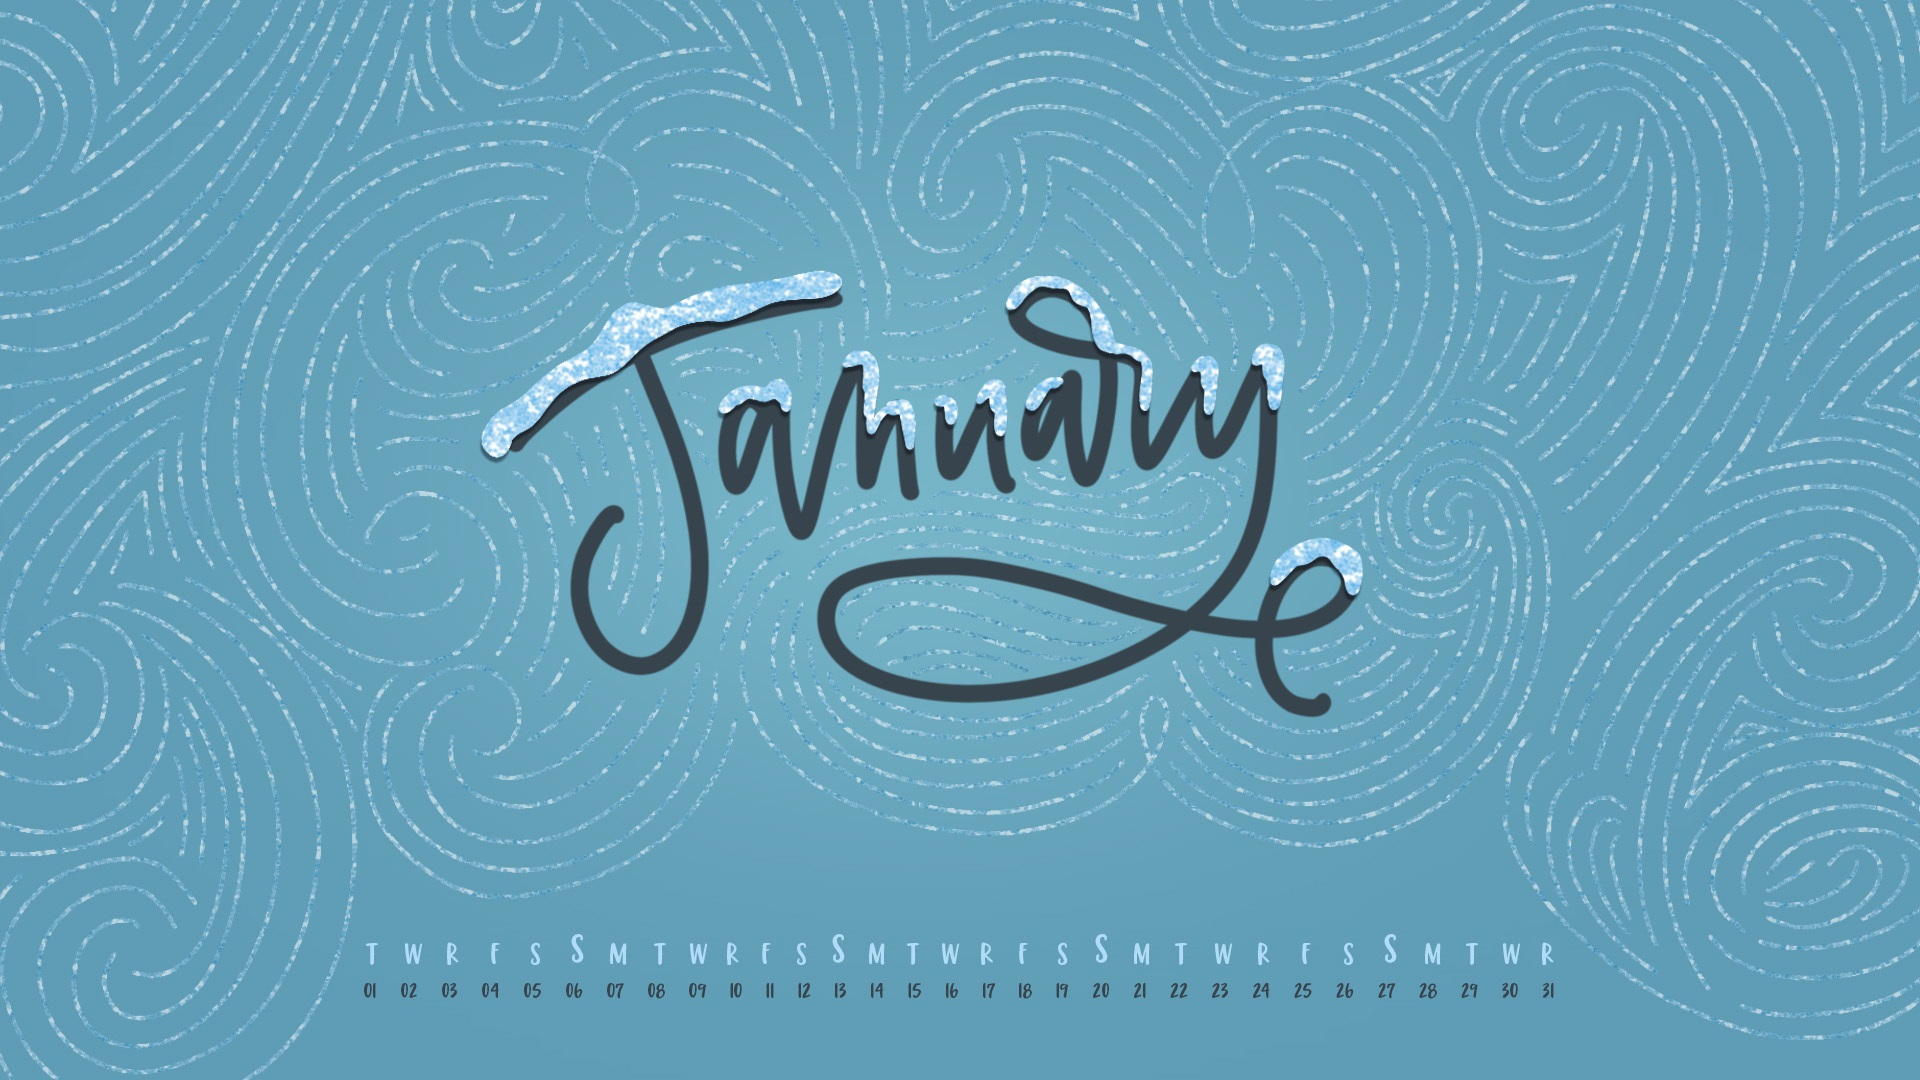 January 2019 HD Calendar Wallpapers Calendar 2019 1920x1080